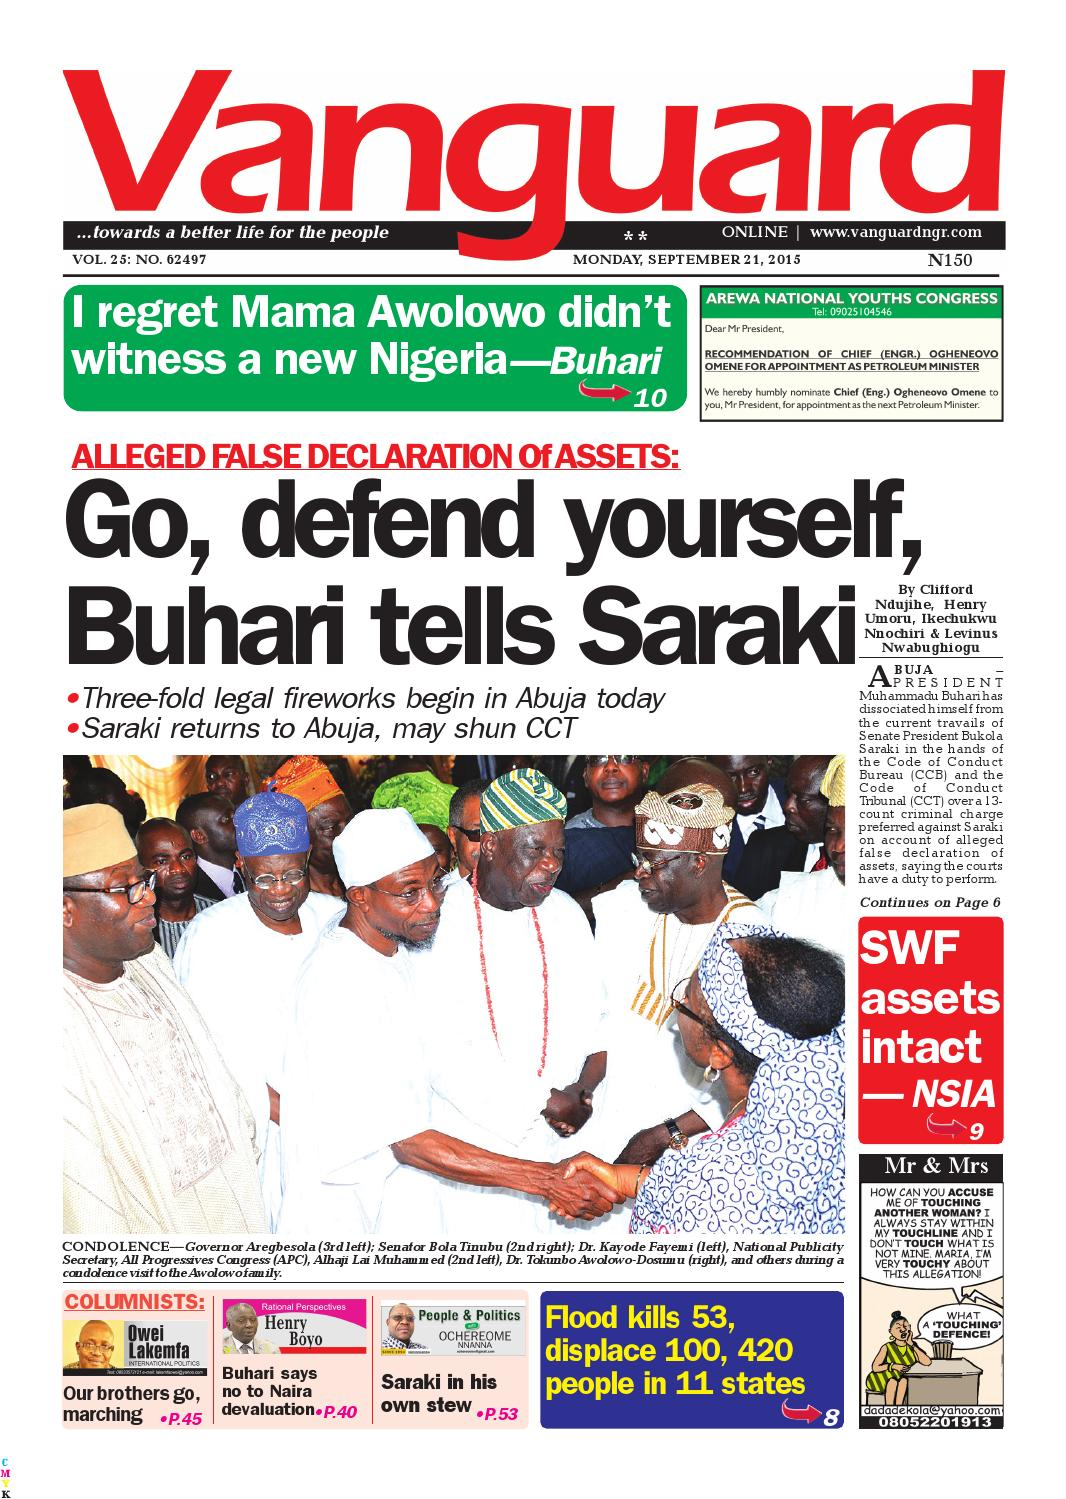 Go, defend yourself, Buhari tells Saraki